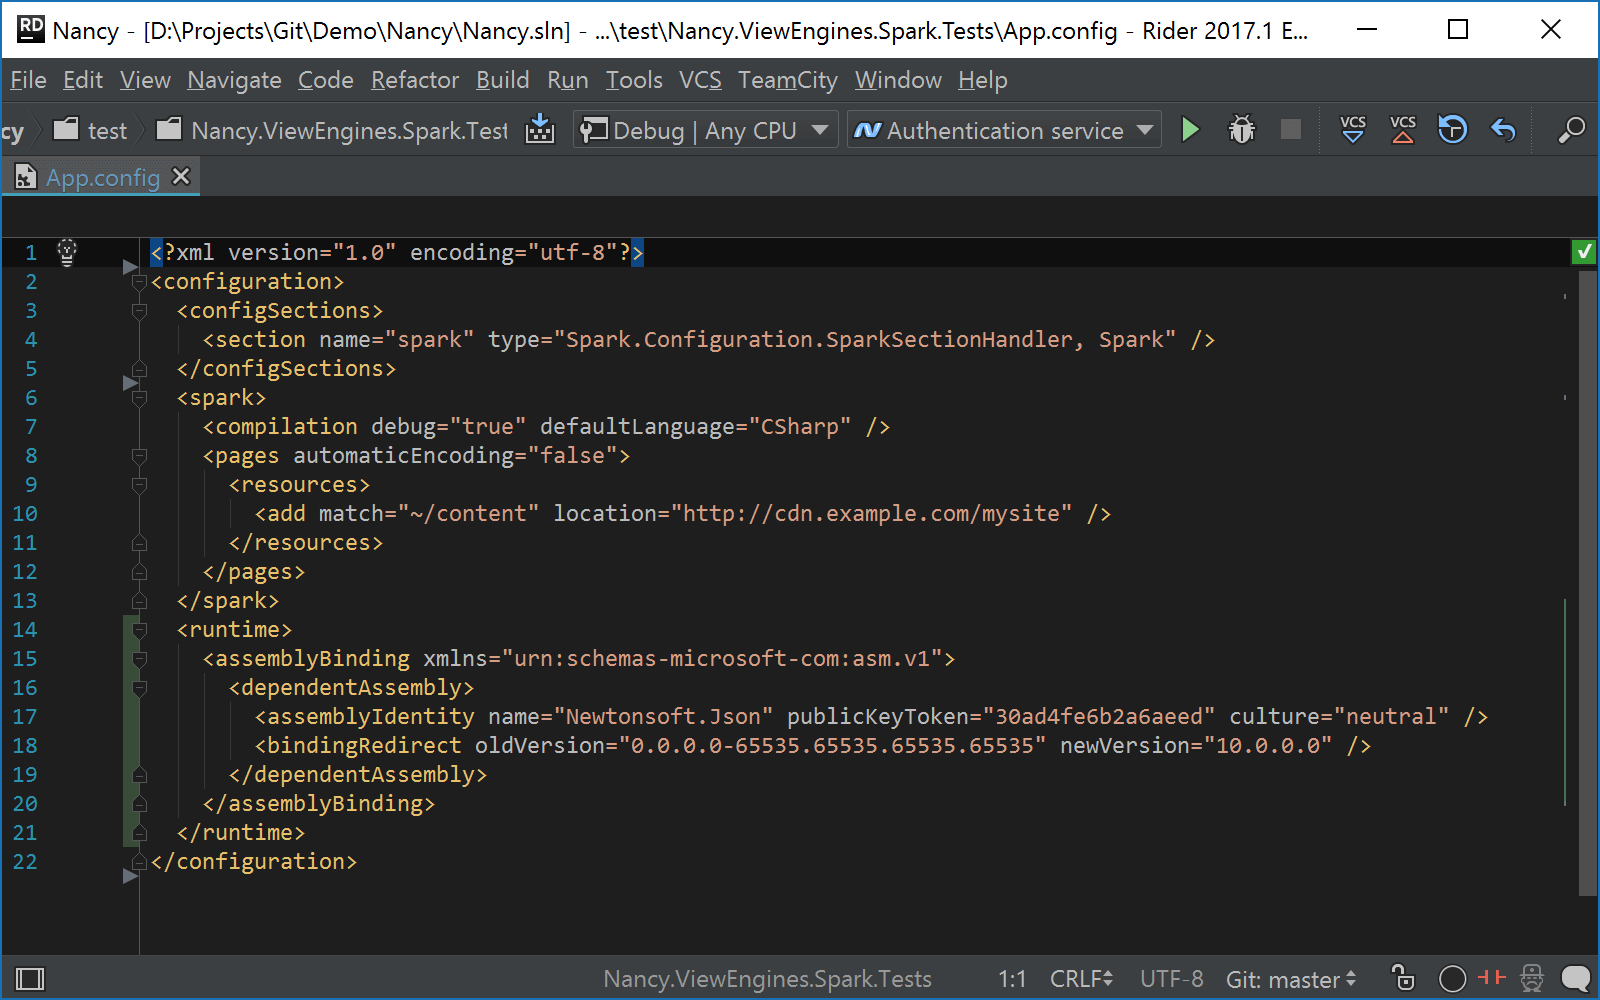 Navigation in config files and MSBuild